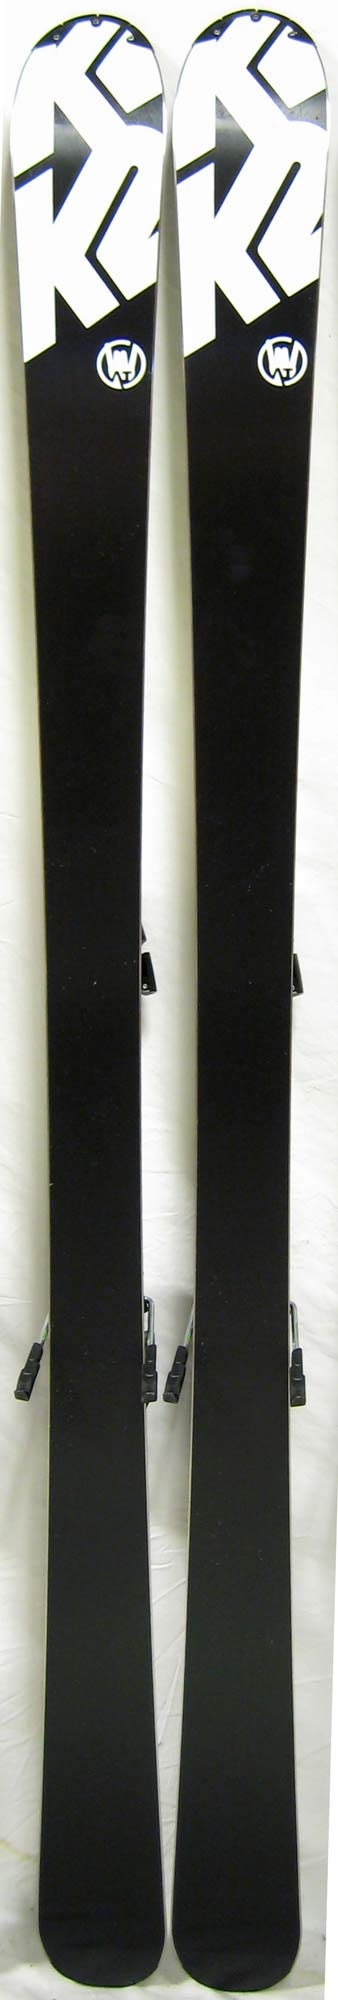 Bases of 2011 K2 Amp Photon Skis For Sale